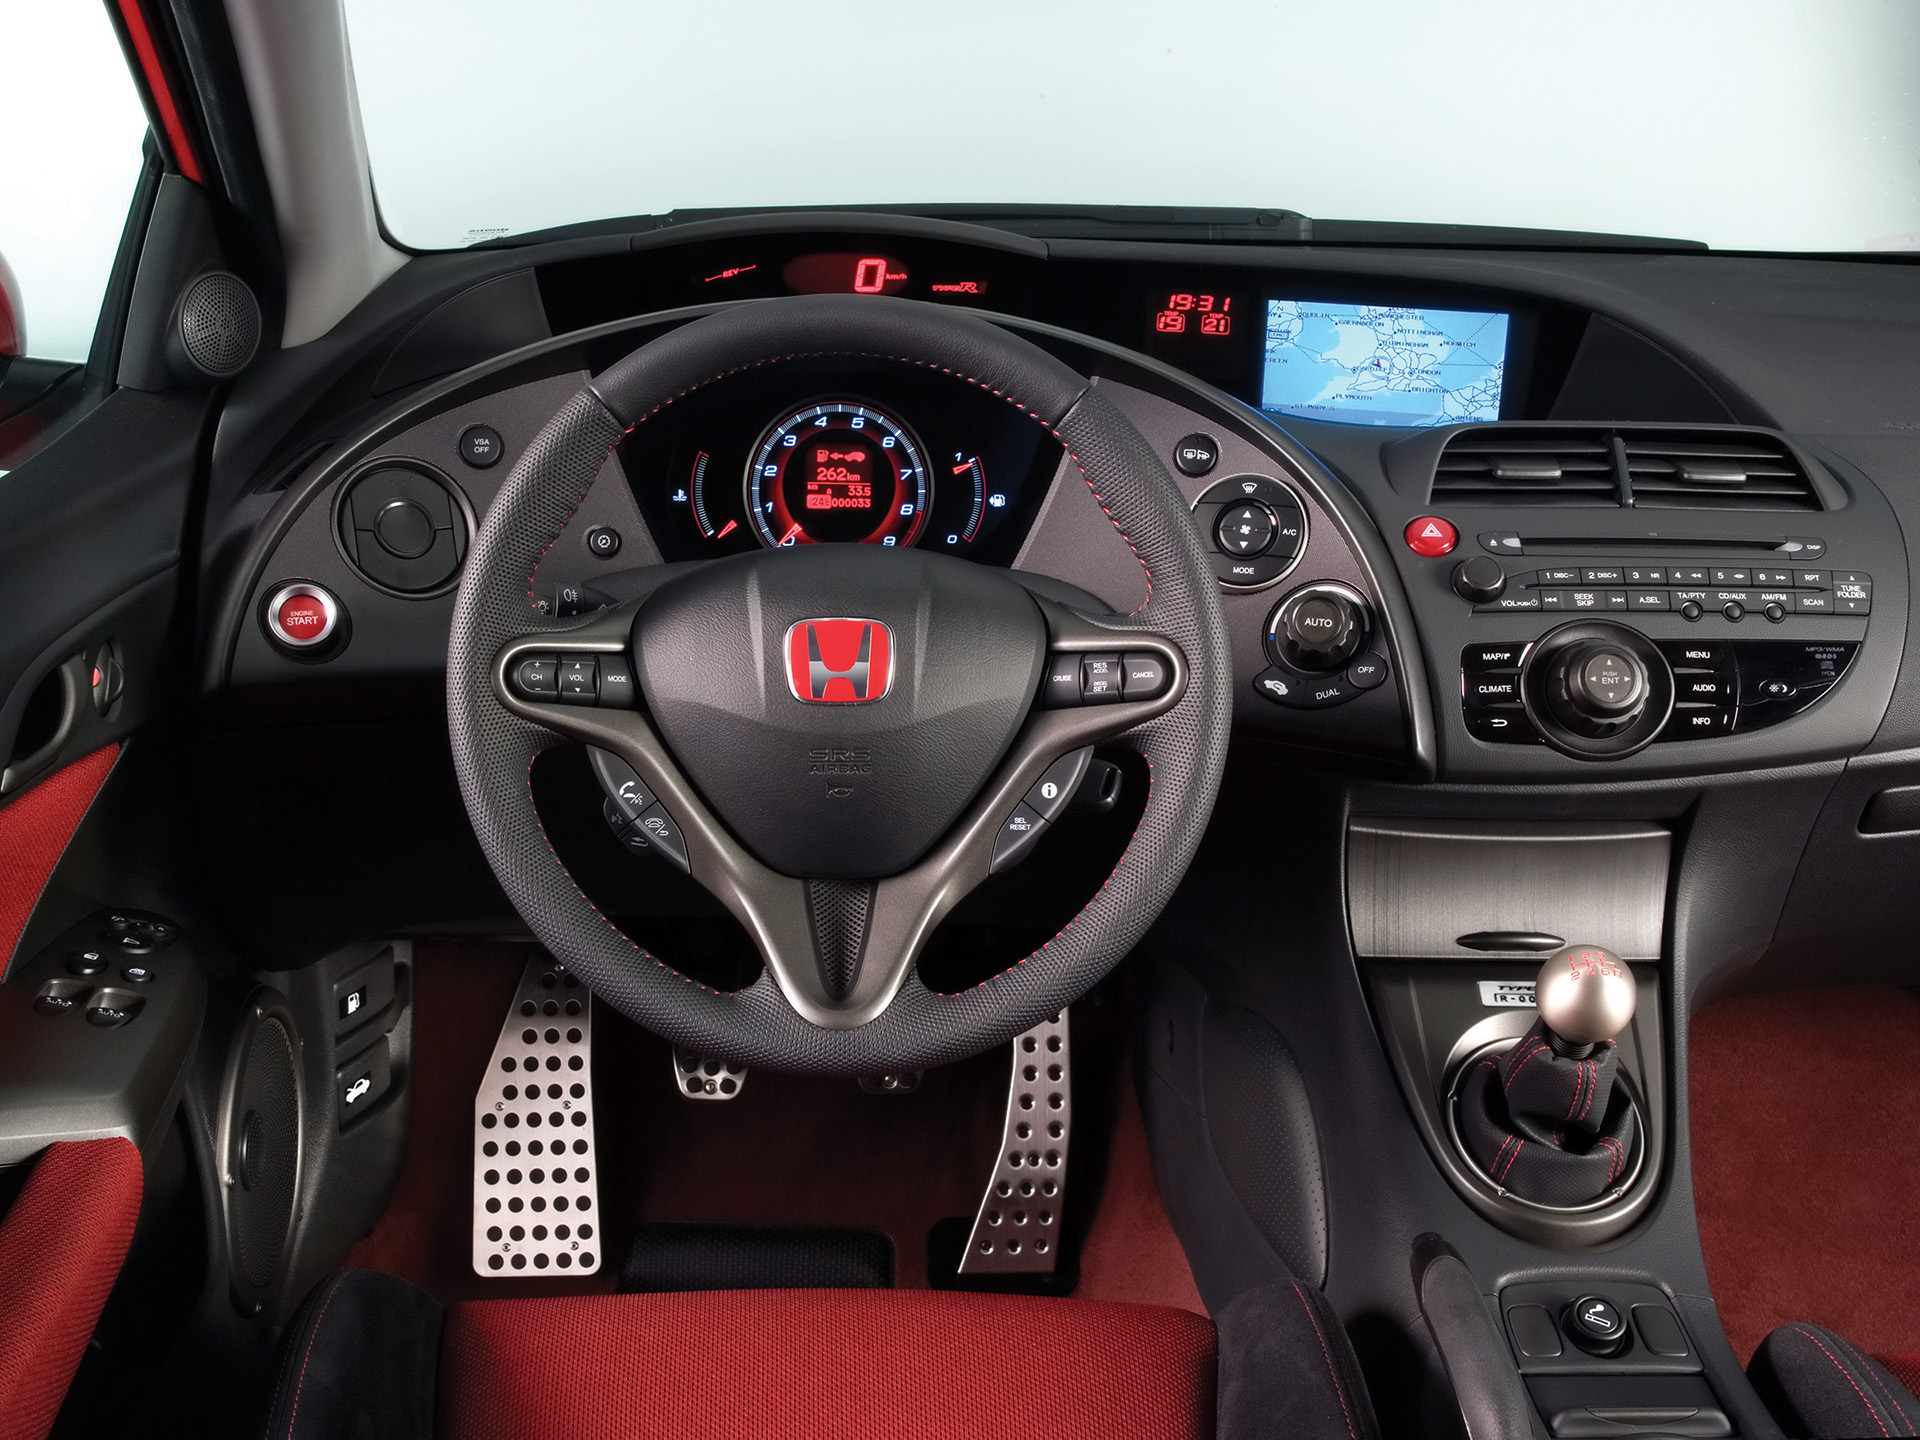 Honda Civic SiR interior